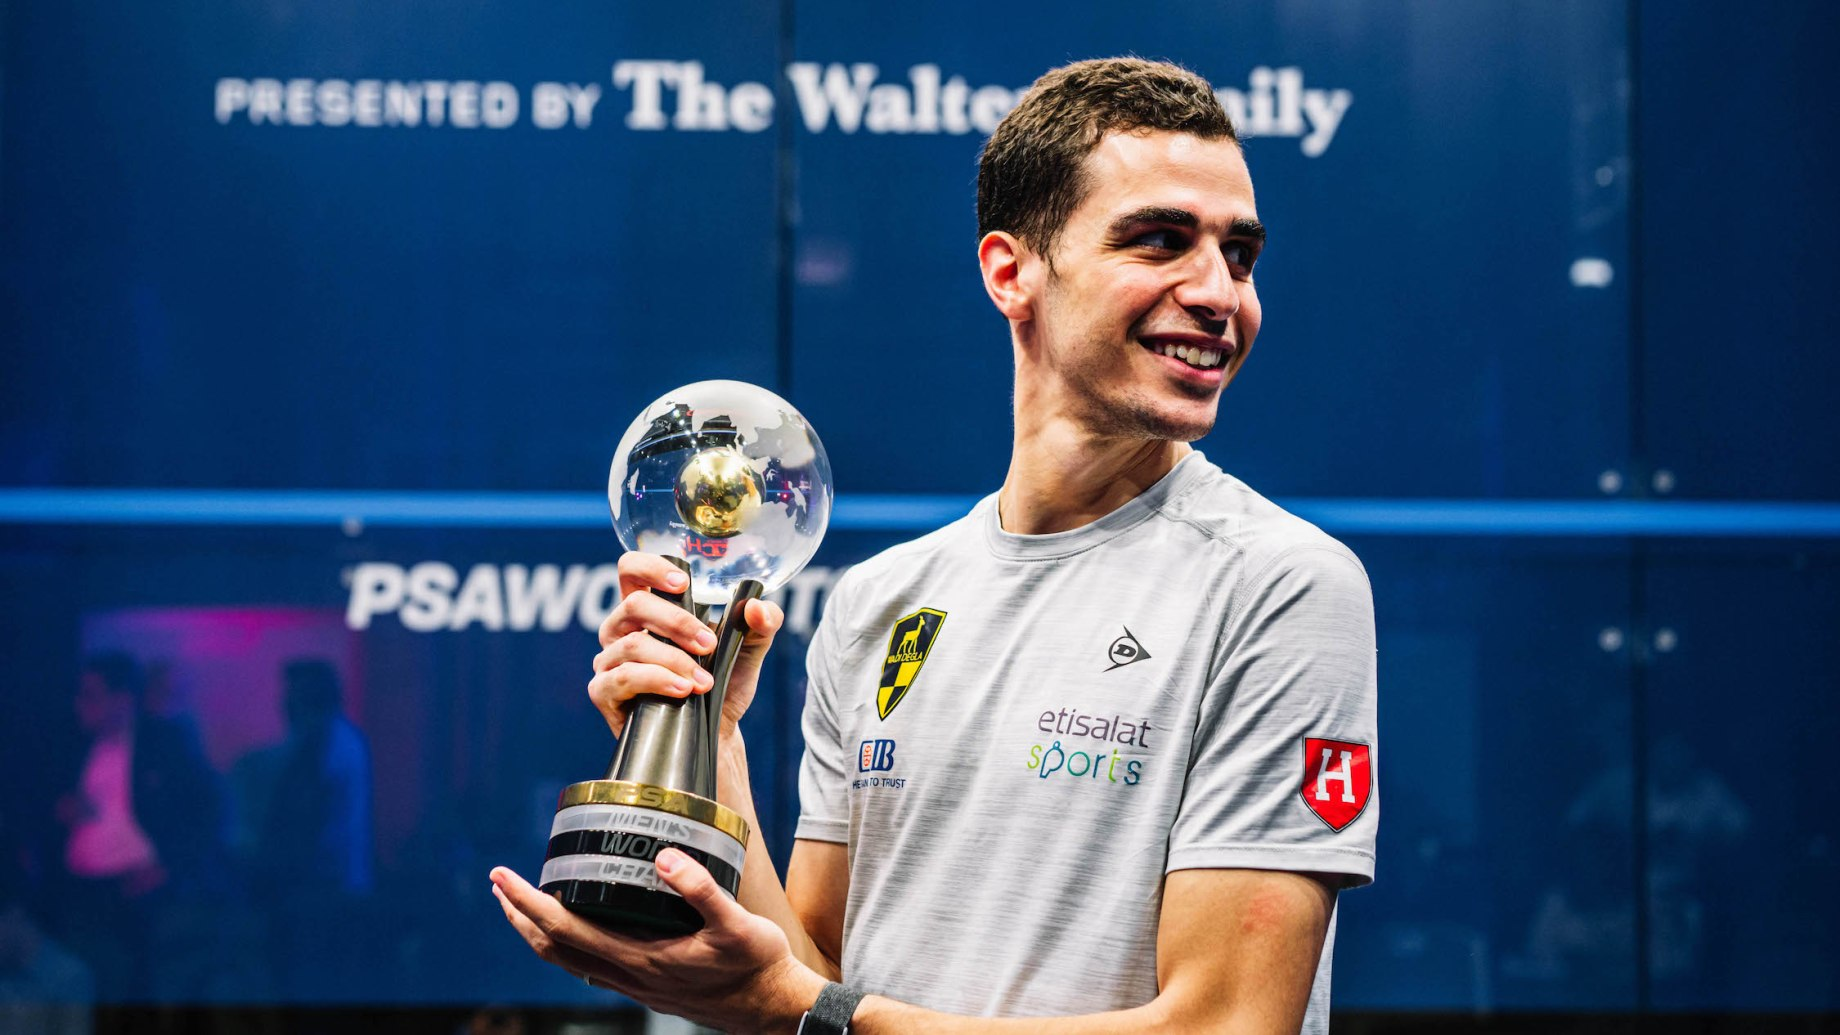 Ali Farag with the 2020-21 PSA World Championships trophy